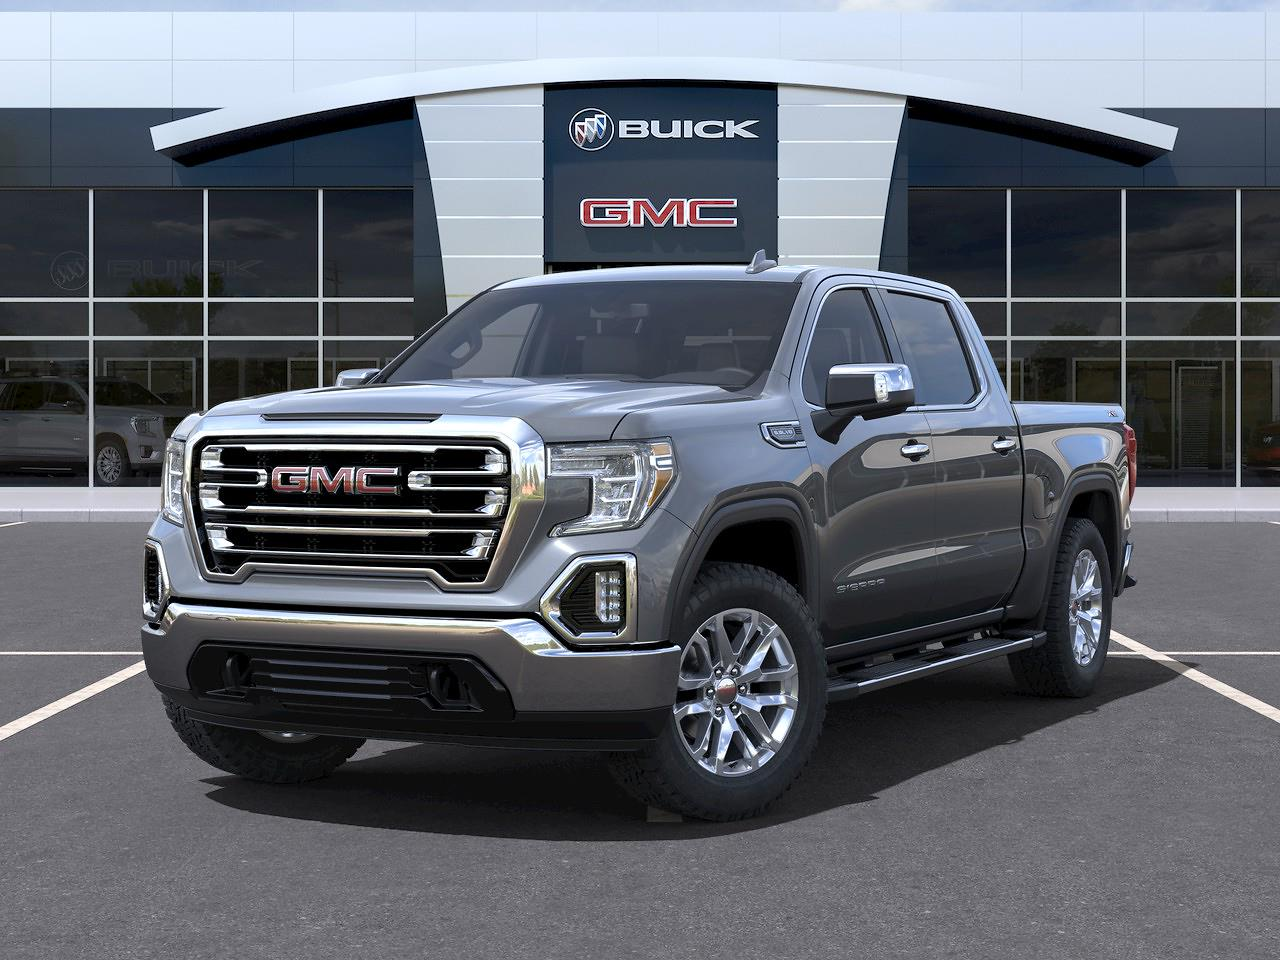 2021 GMC Sierra 1500 Crew Cab 4x4, Pickup #23617 - photo 6